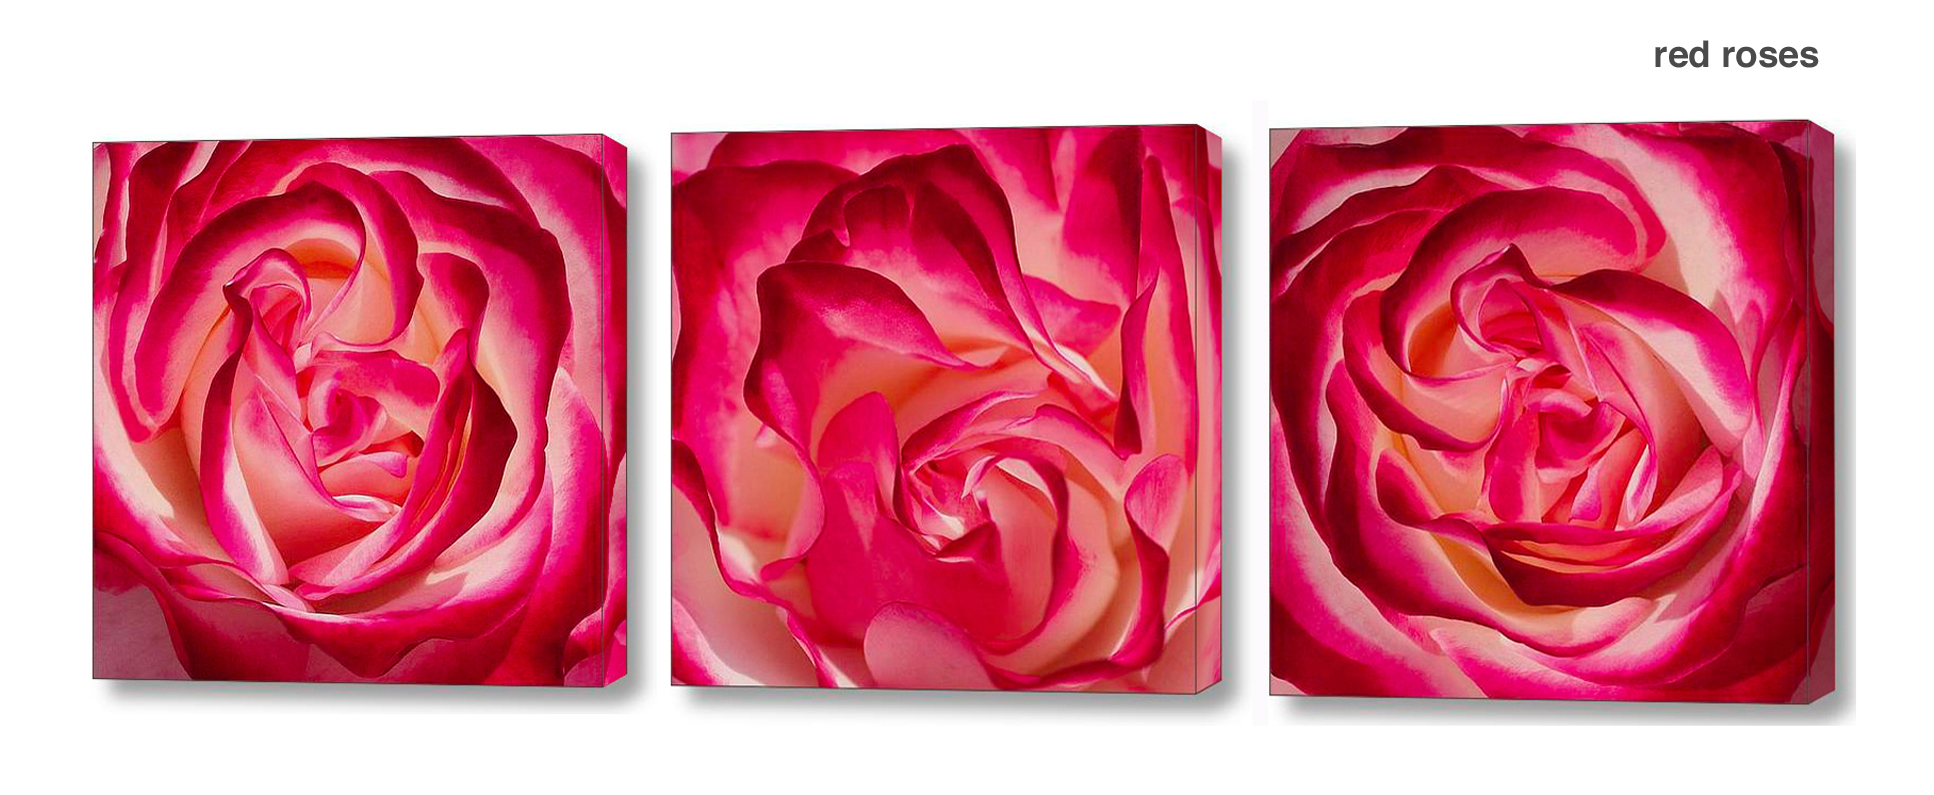 red rose series - floral Wall Decor Macro Photography Matted & Giclée Canvas Prints